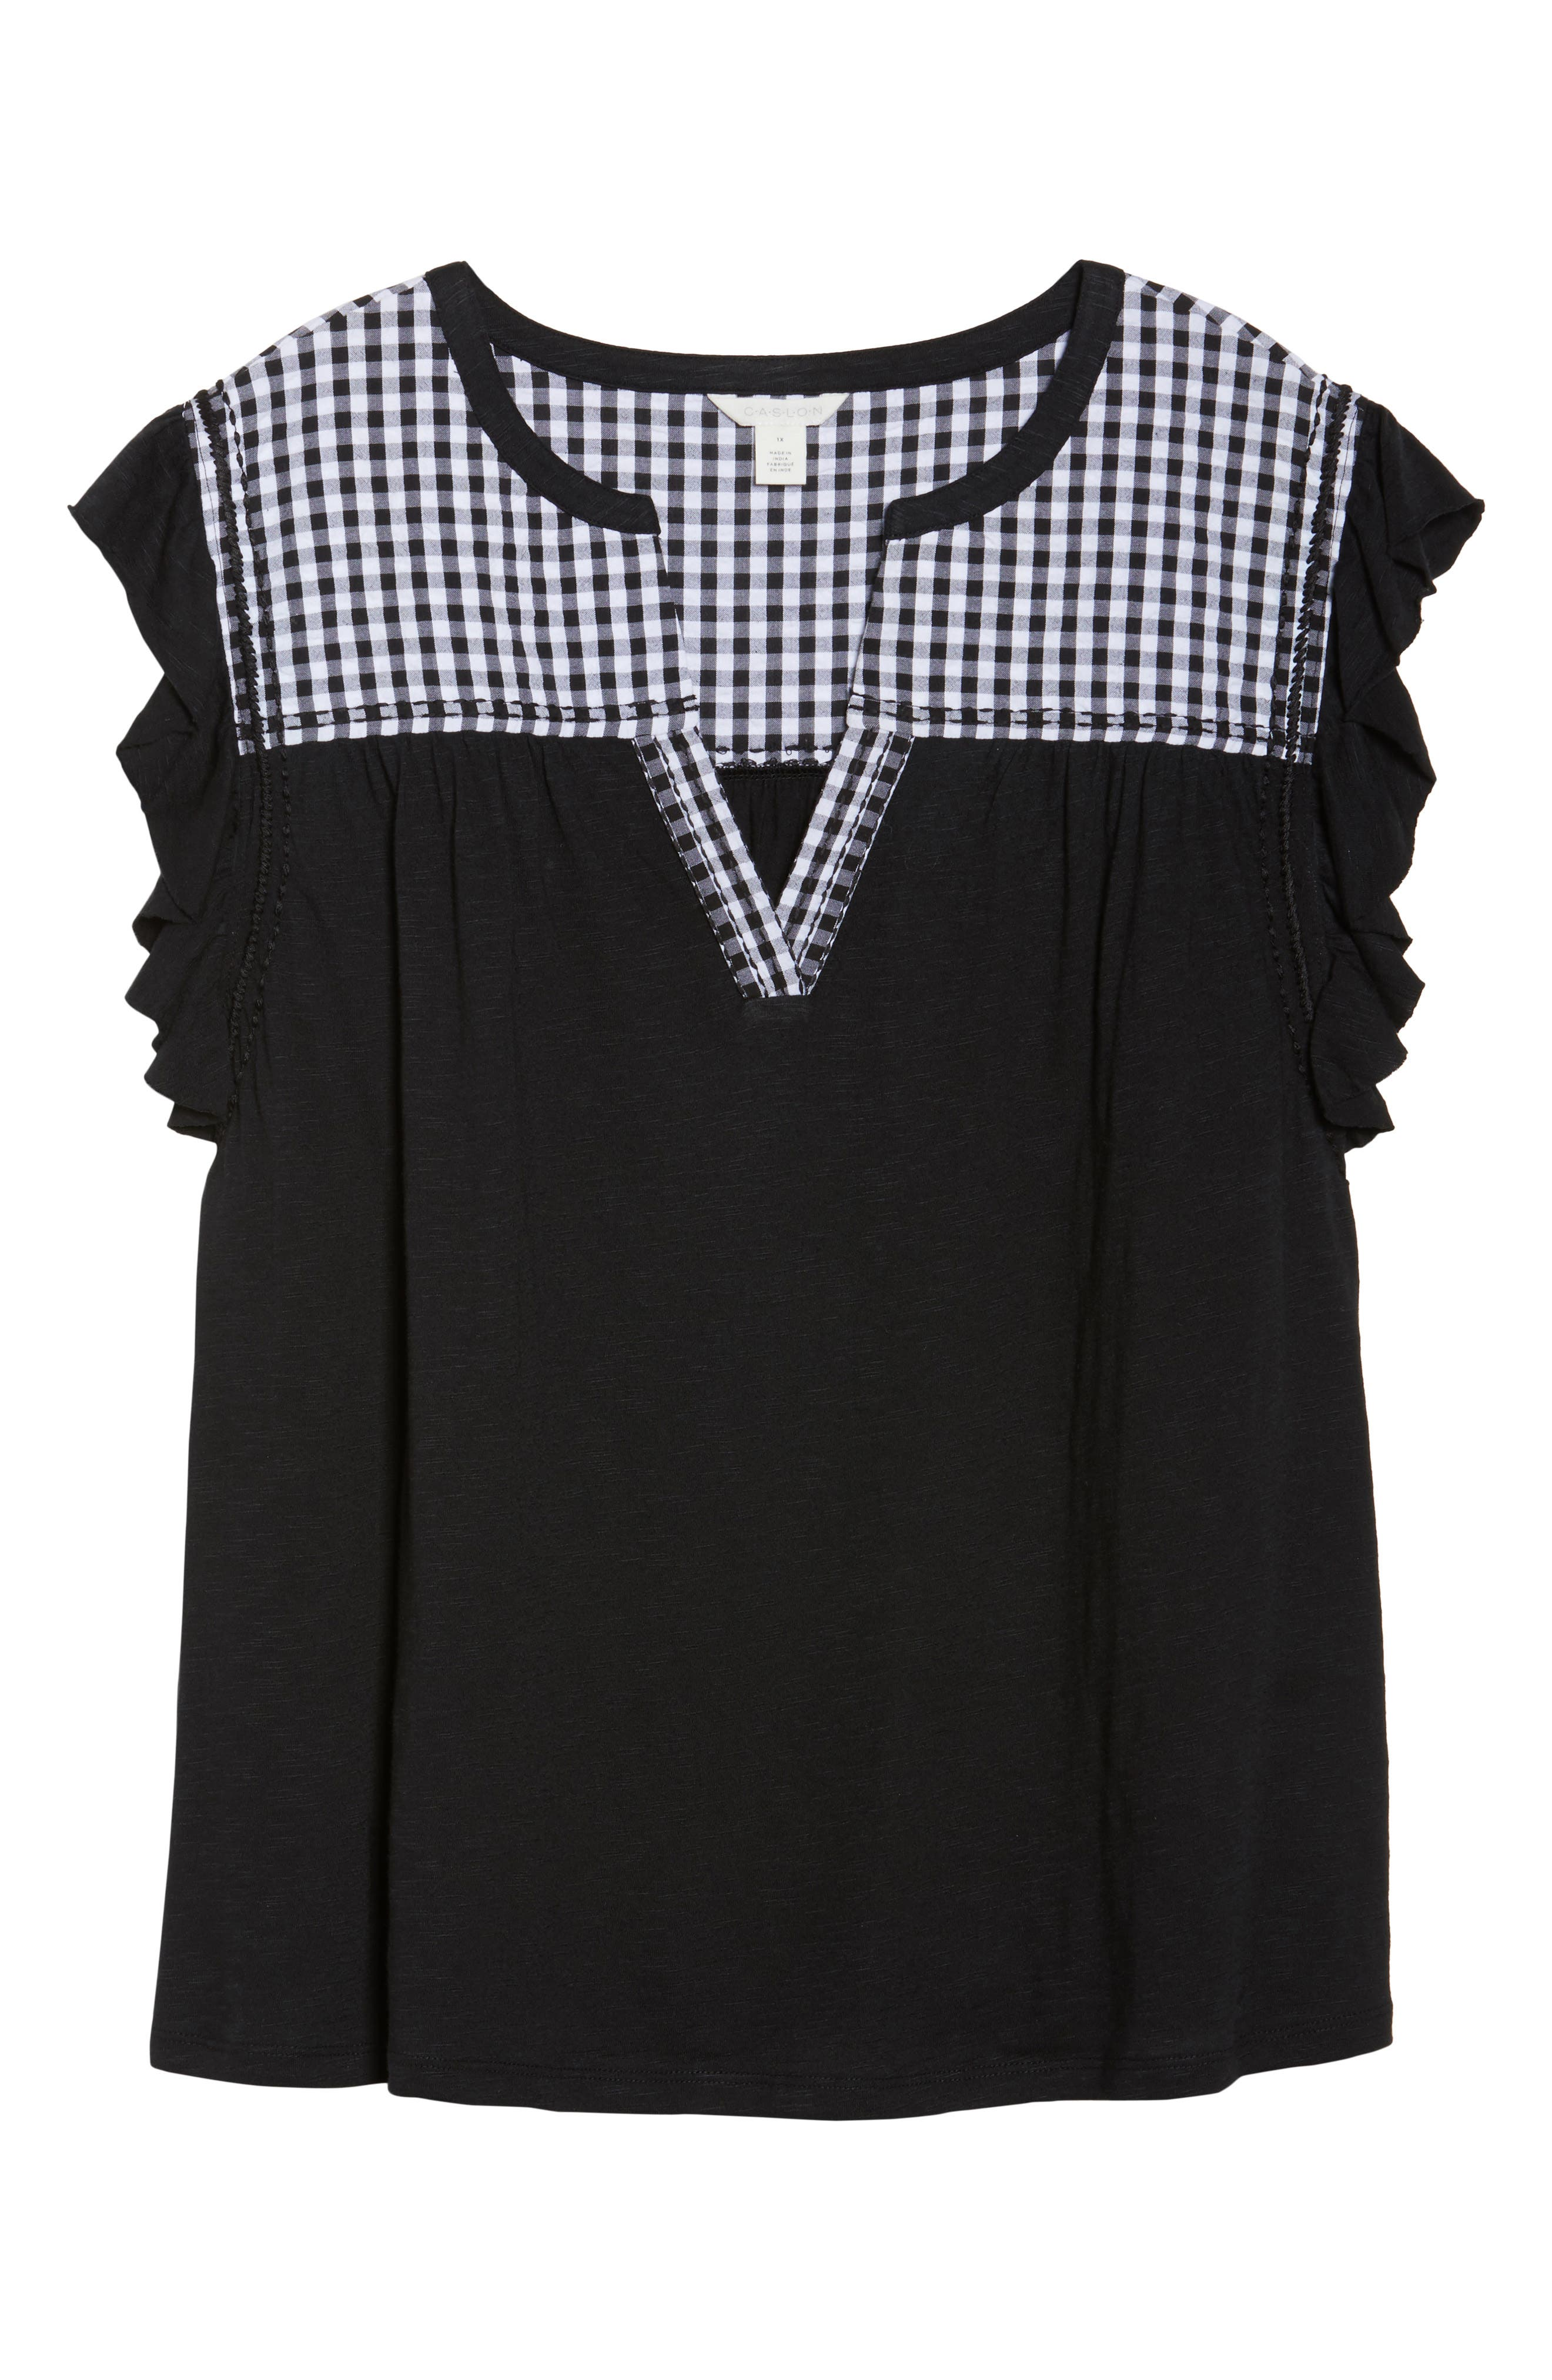 Mixed Media Top,                             Alternate thumbnail 7, color,                             Black- White Gingham